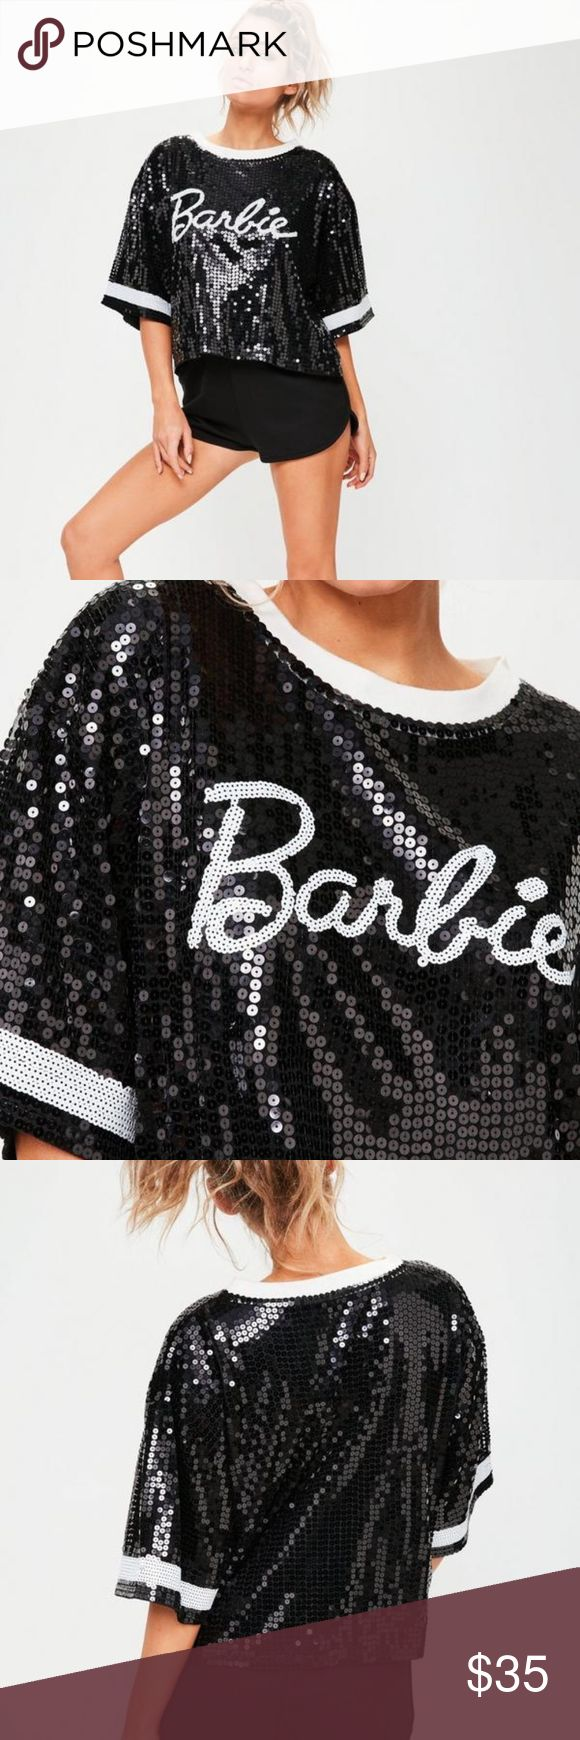 """Barbie x Missguided Black Sequin T-Shirt cover yourself in sequins and sparkle in the spotlight wearing this sequin t-shirt. featuring an all over black sequin finish with contrasting white bands, rounded neck and barbie motif.  regular / stretch fit   95% polyester 5% elastane    approx length: 51cm/20""""  Only worn once, in like new condition. Missguided Tops Crop Tops"""